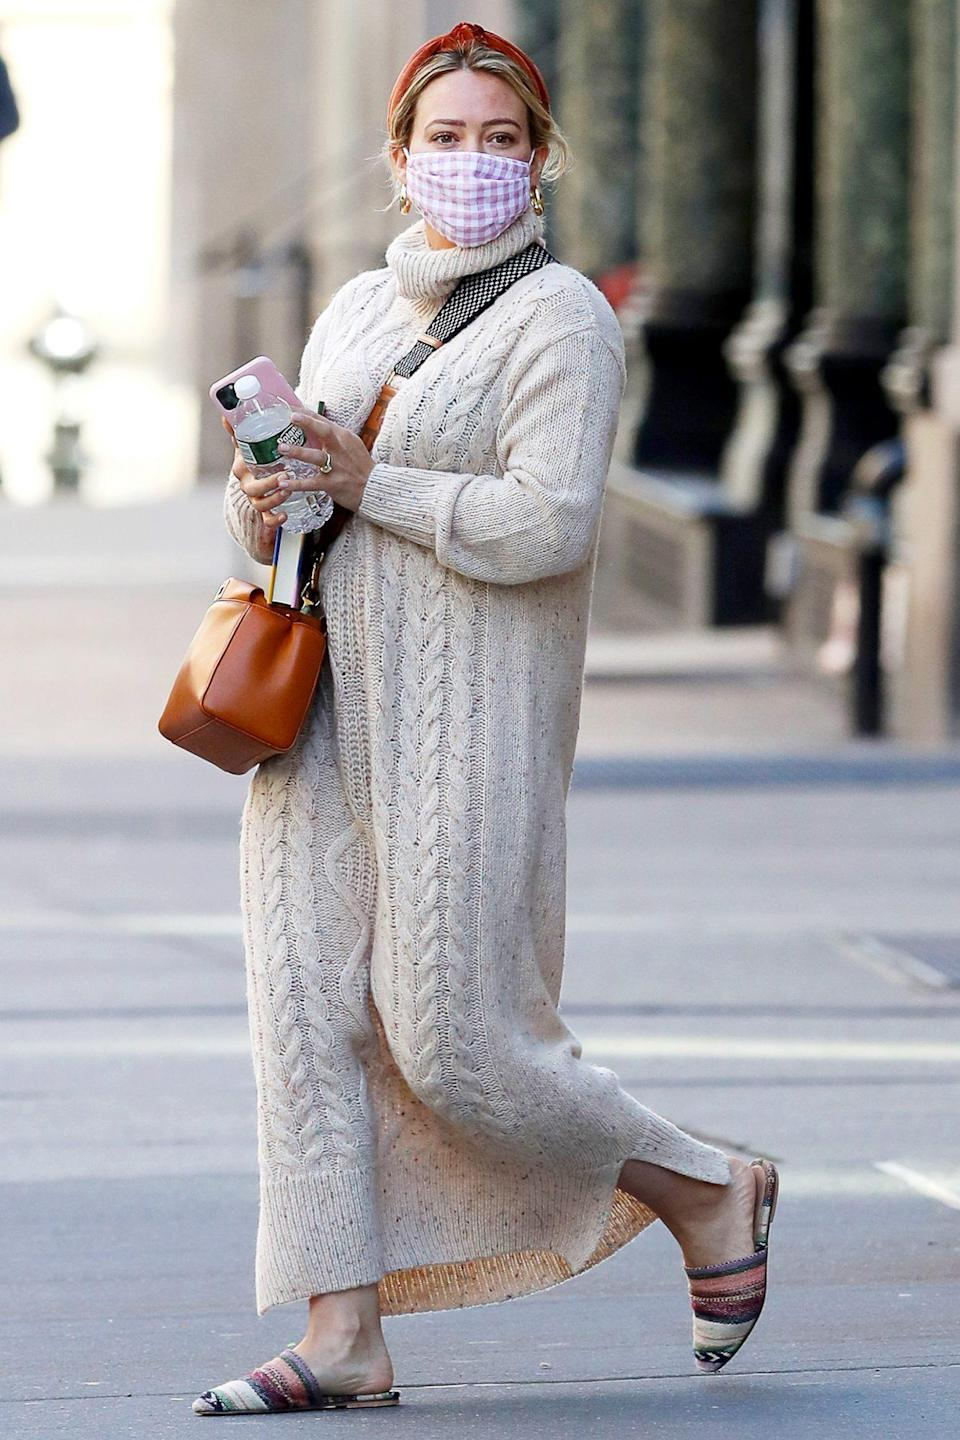 <p>Hilary Duff wore a tan knit sweater dress on her walk through N.Y.C. on Saturday.</p>